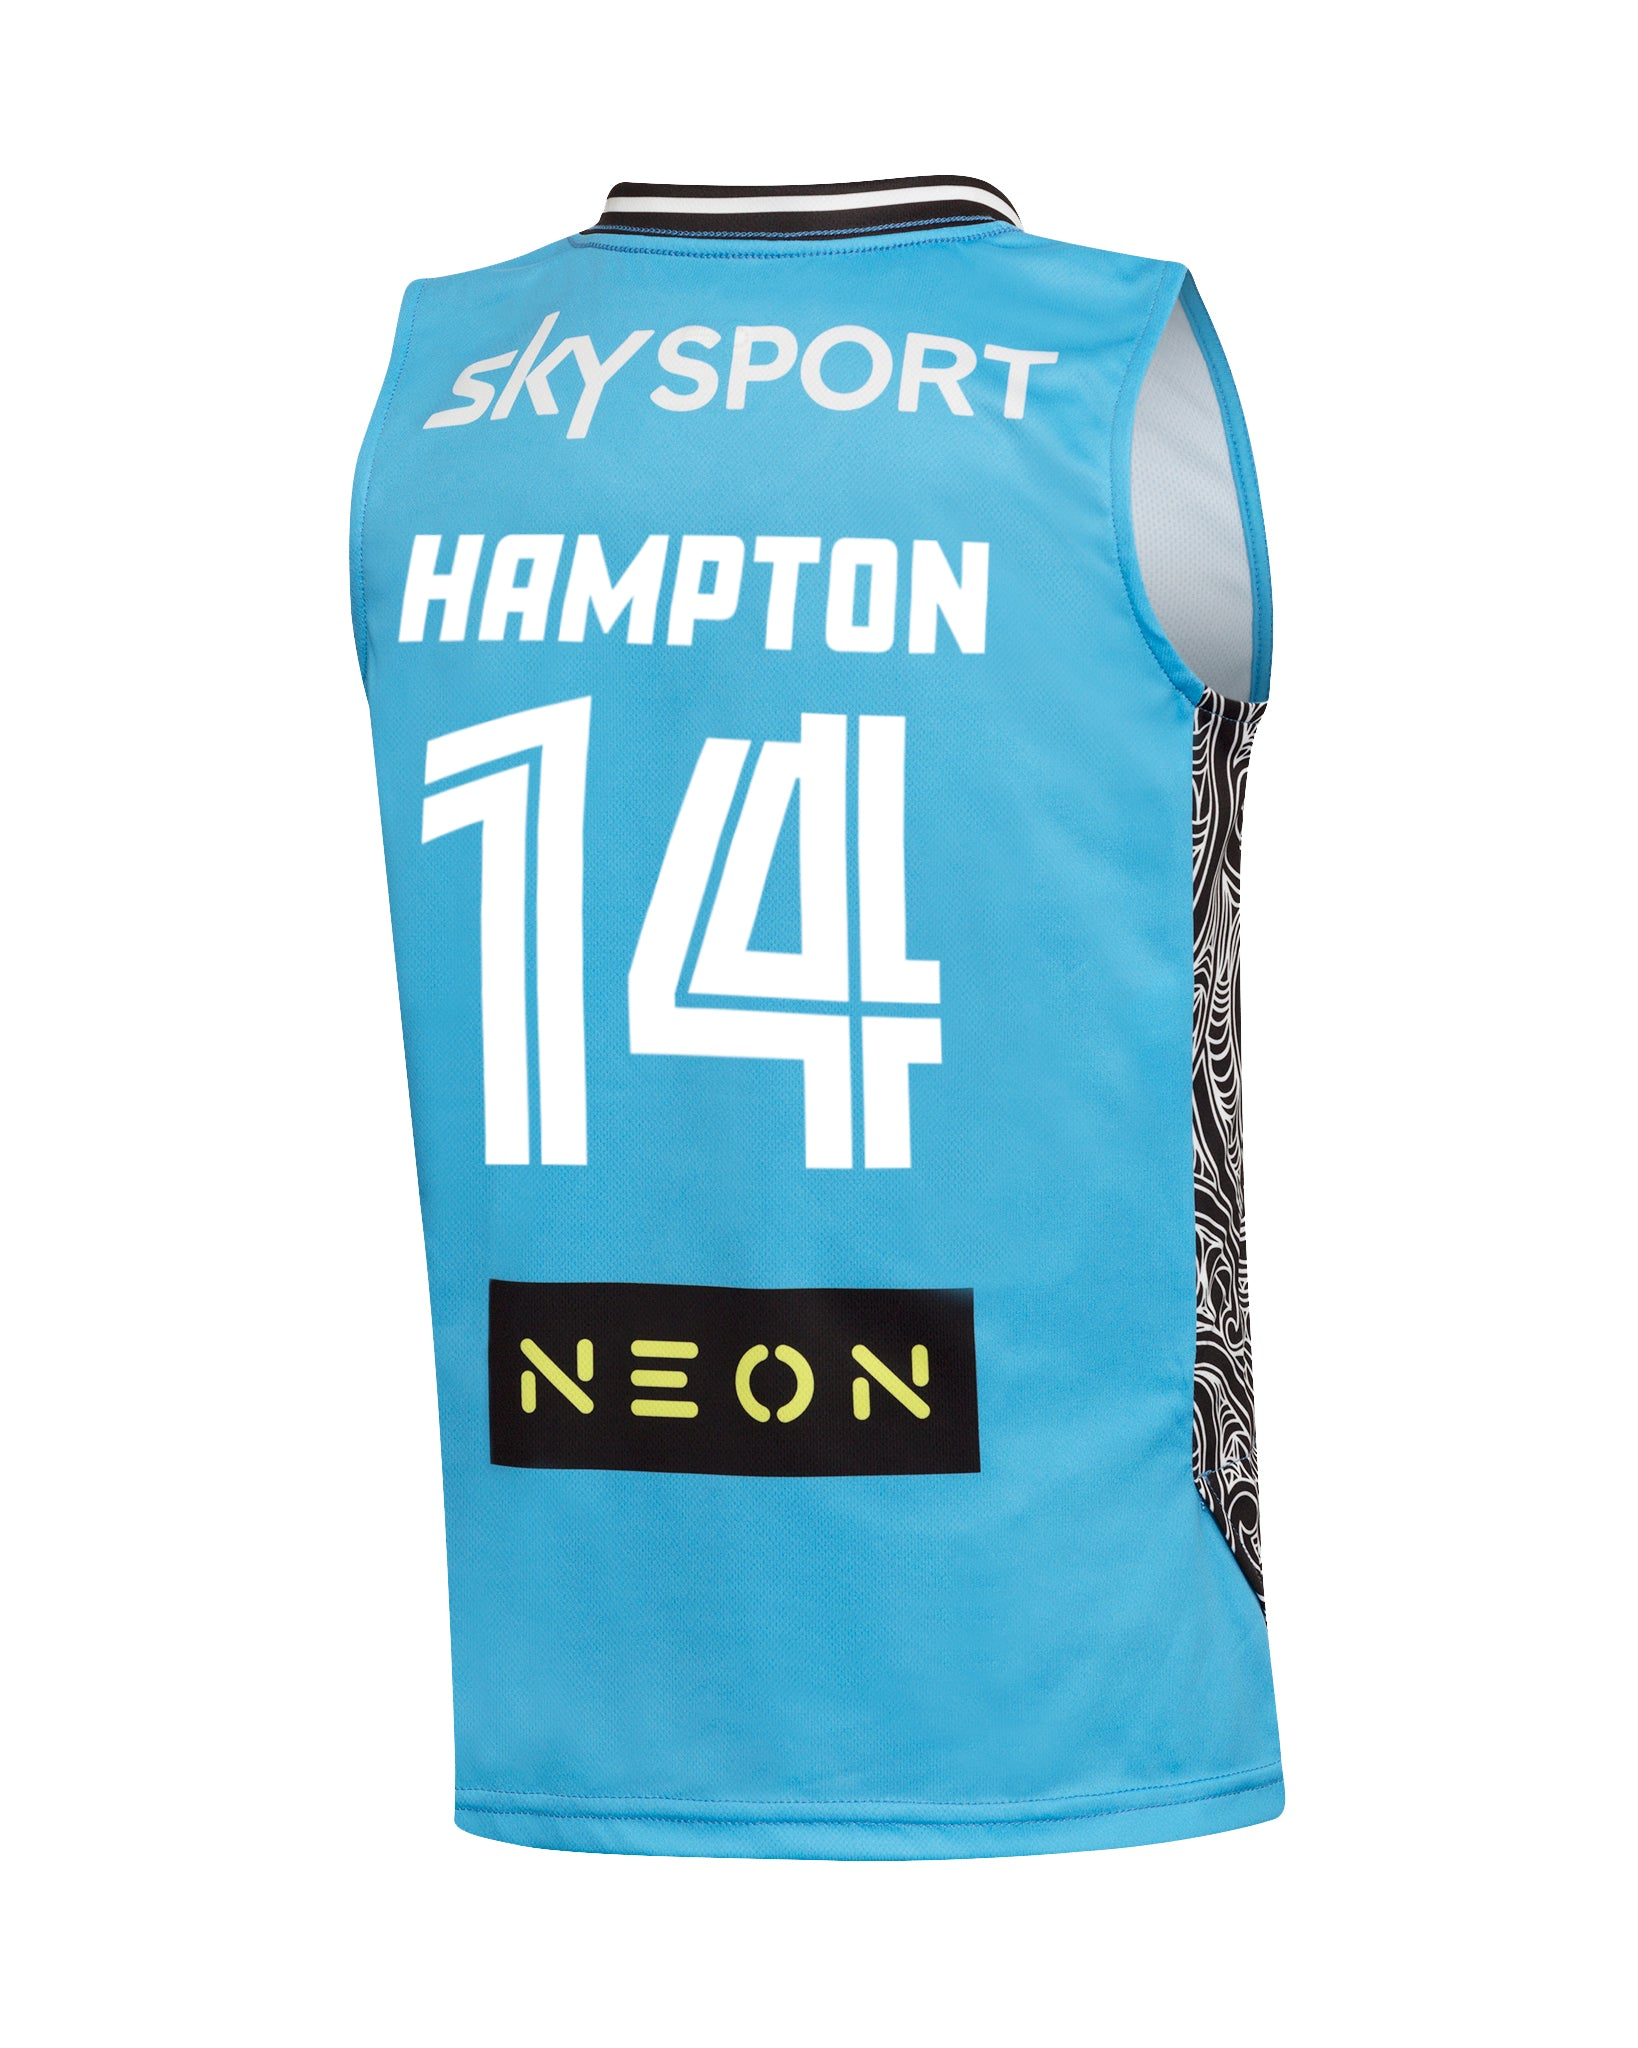 New Zealand Breakers 19/20 Youth Authentic Away Jersey - RJ Hampton